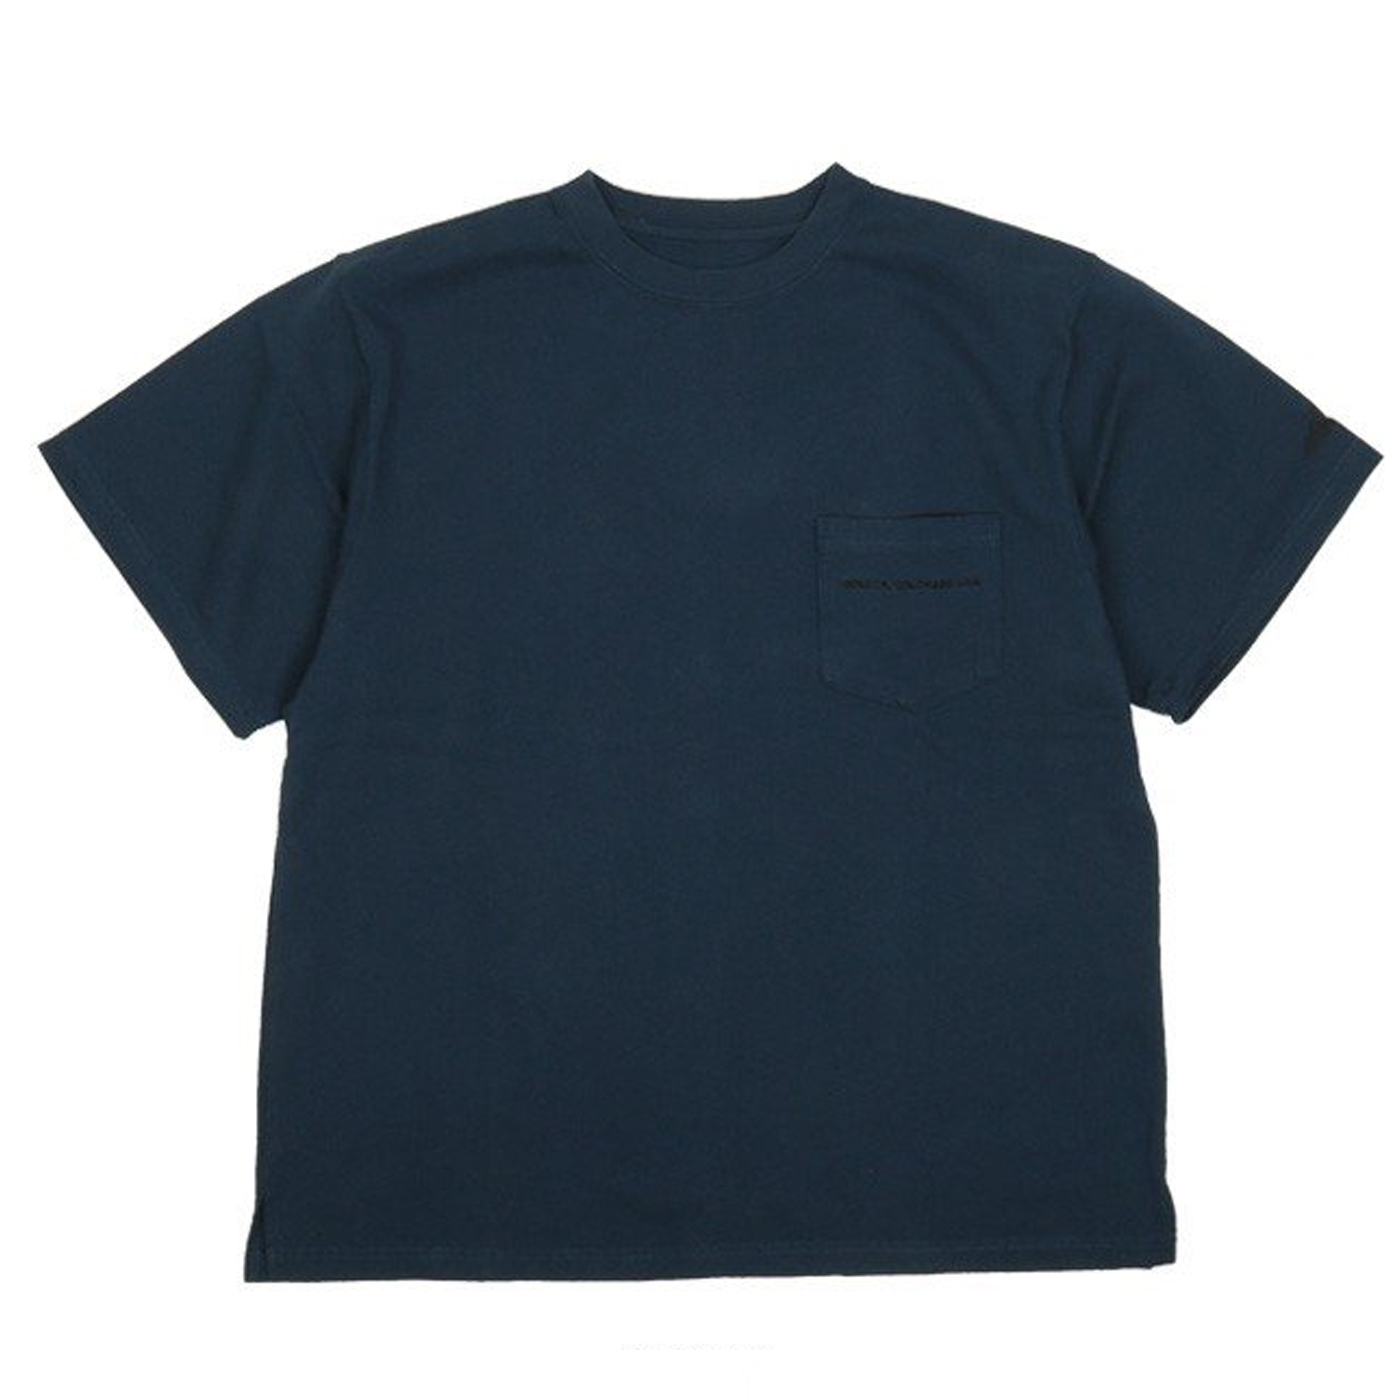 product: POCKET EMBRO T / color: NAVY 1